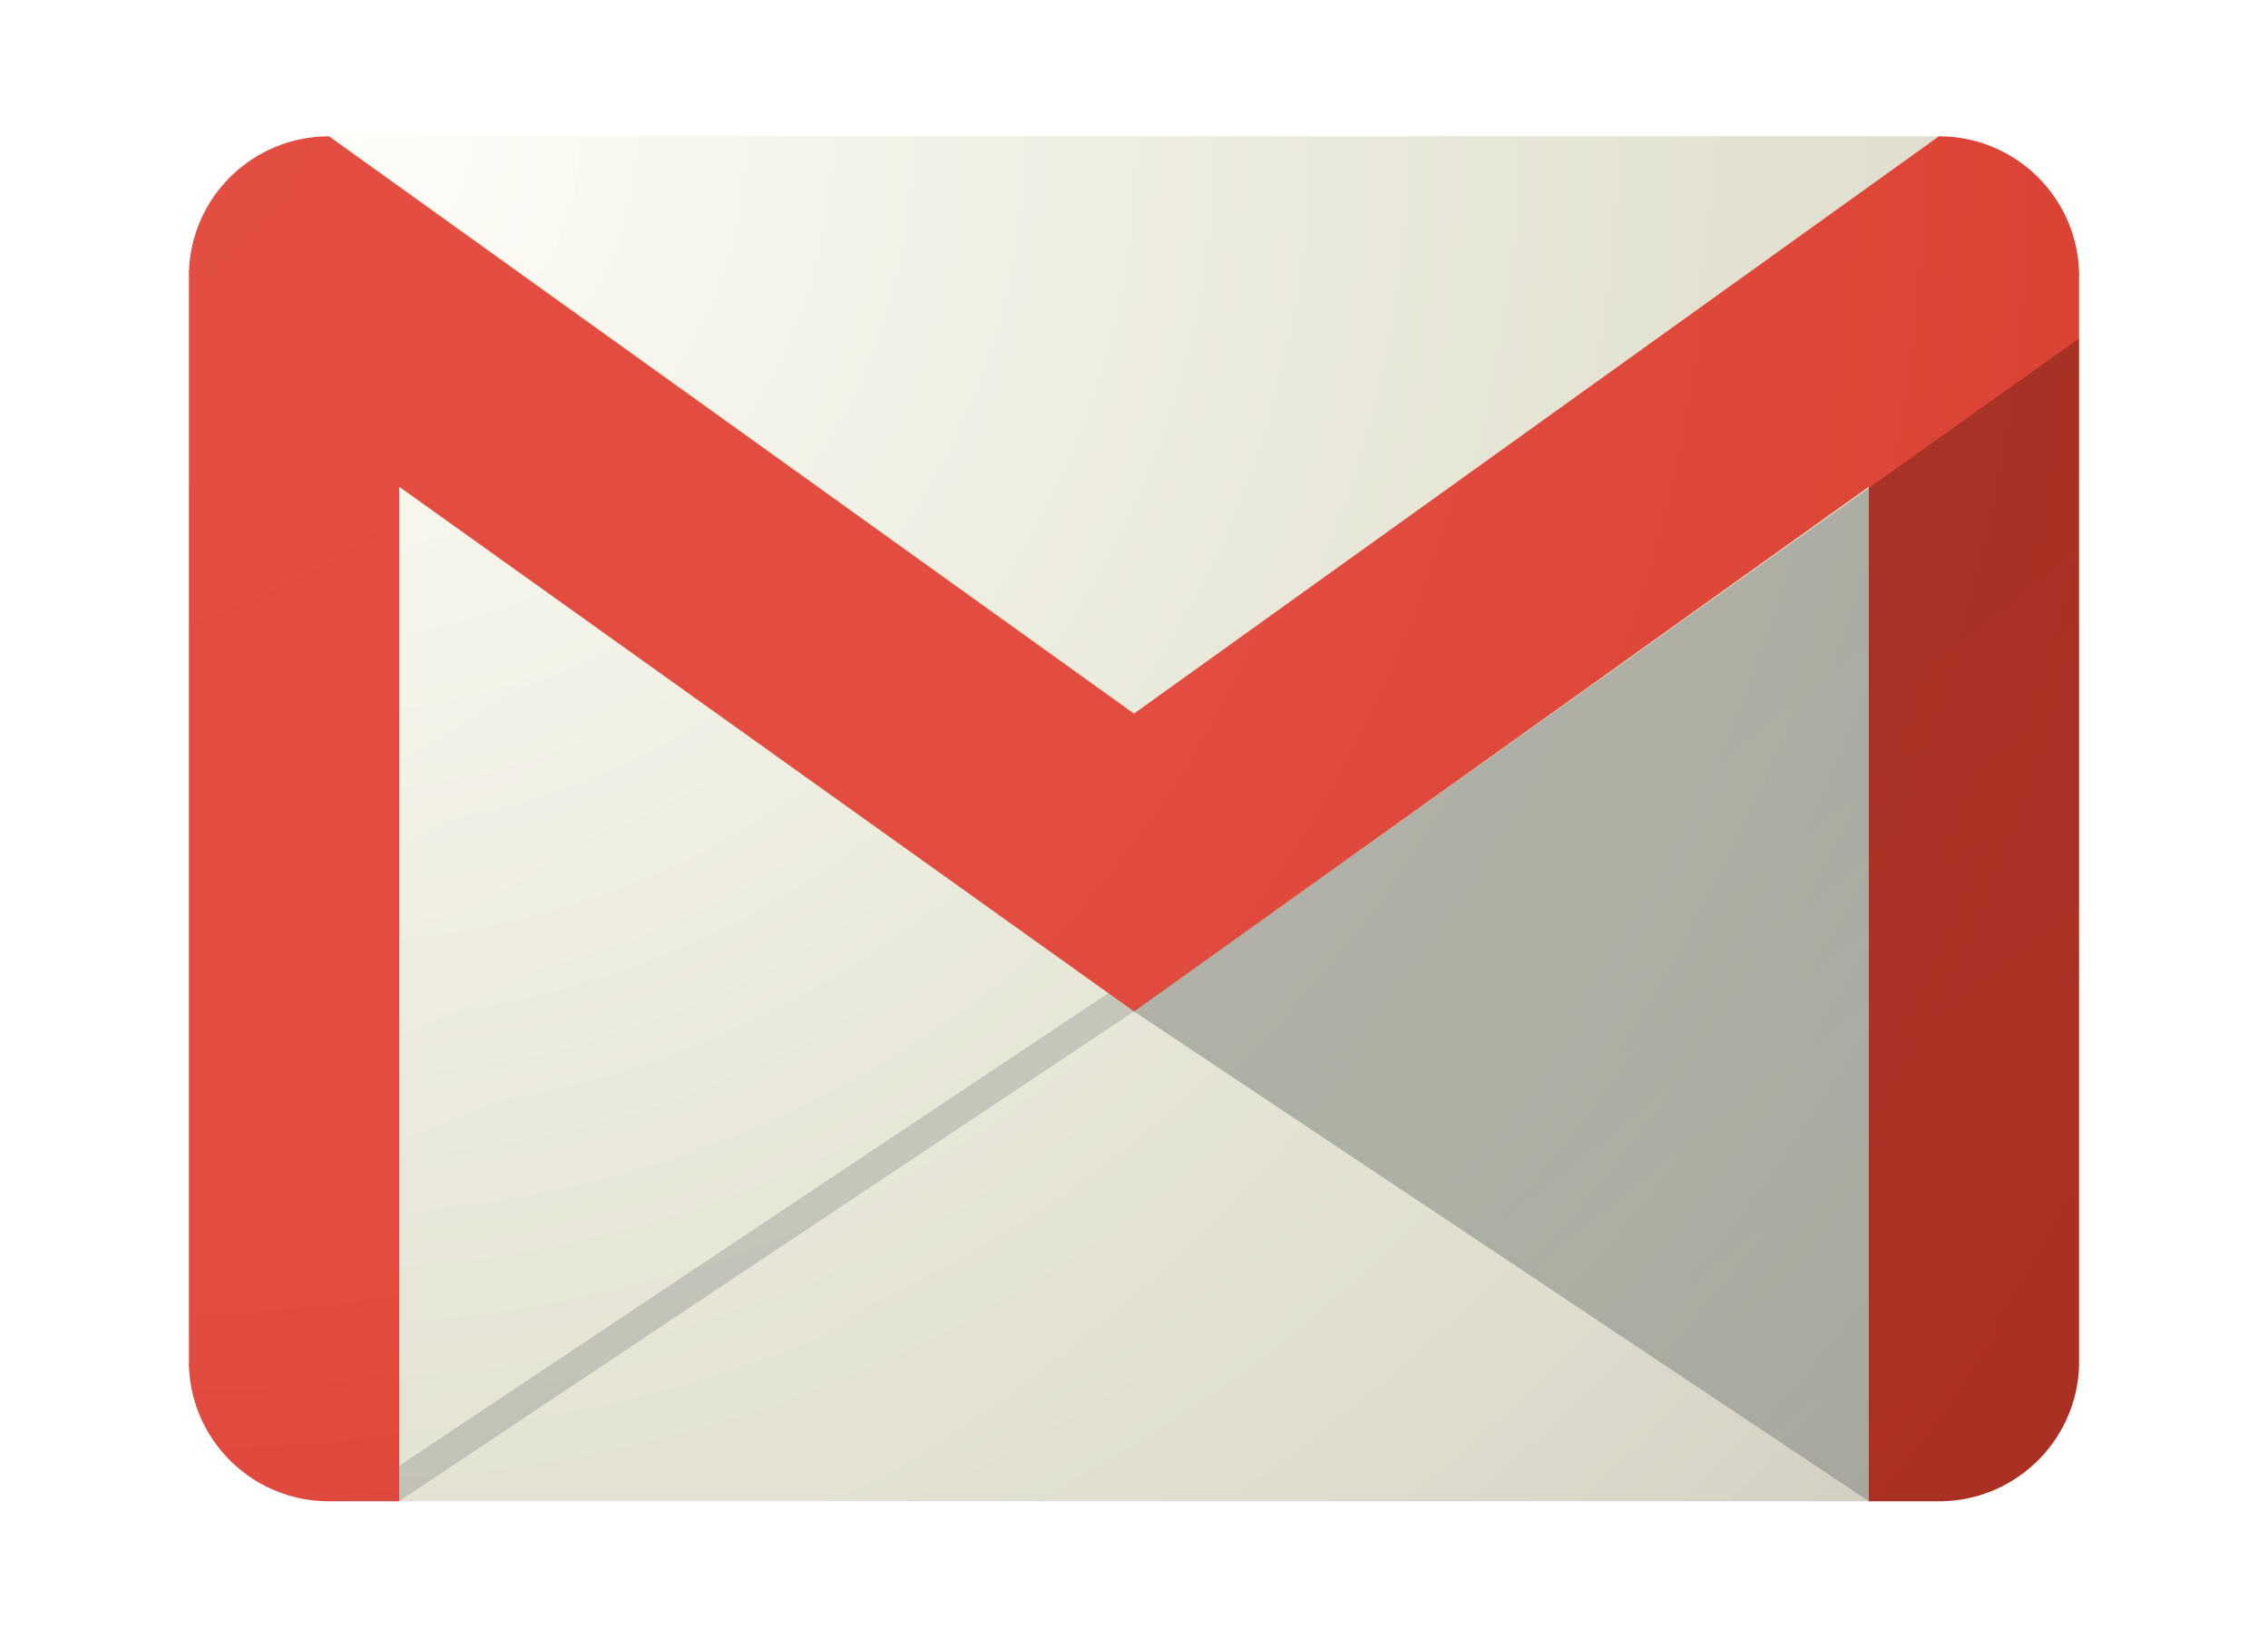 Gmail pop3 langsom problem